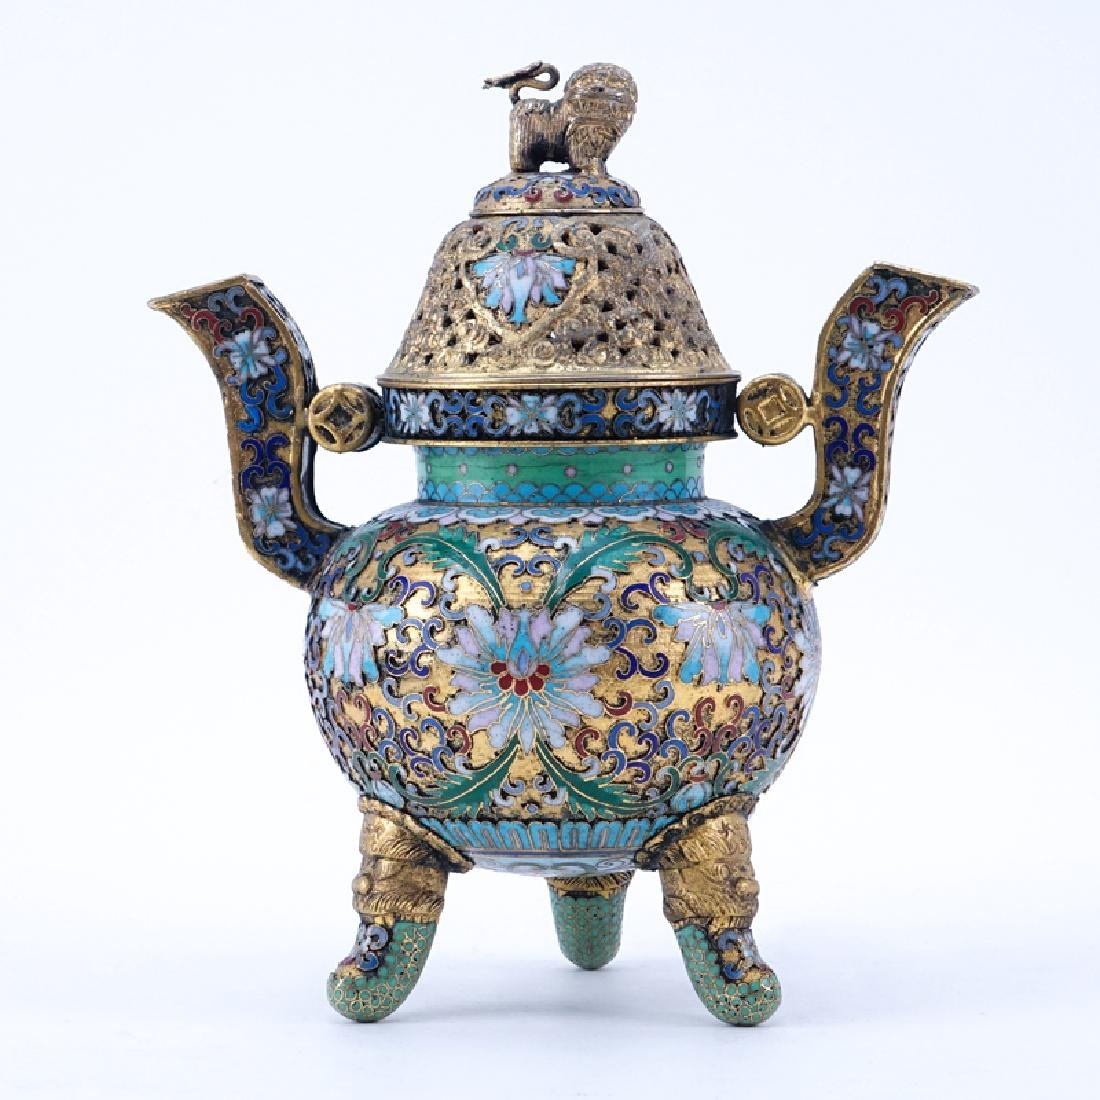 Chinese Cloisonné Enamel Part-Gilt Metal Covered Censer